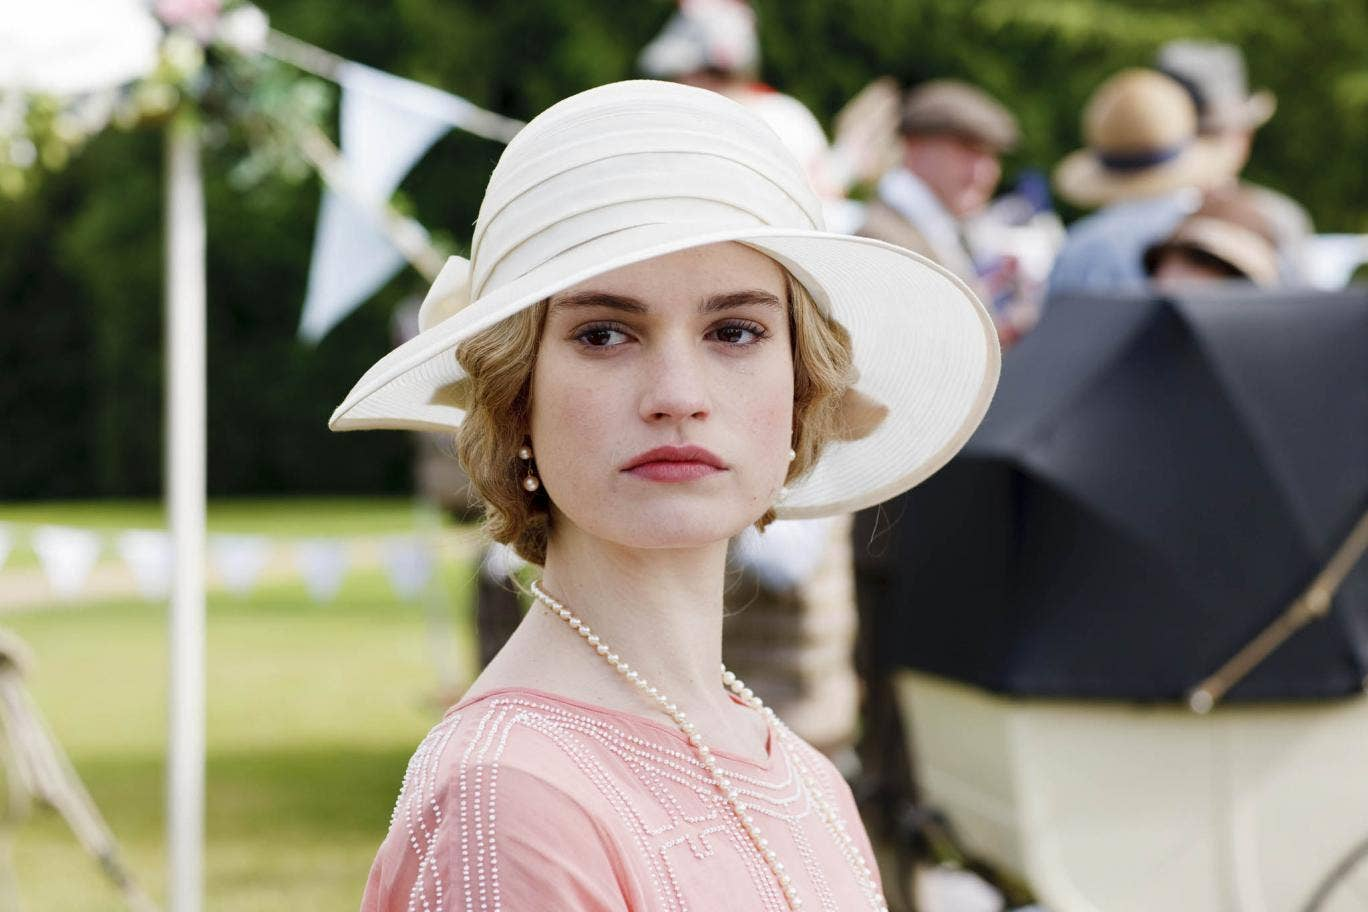 A defiant Lady Rose vows to marry Jack Ross in Downton Abbey